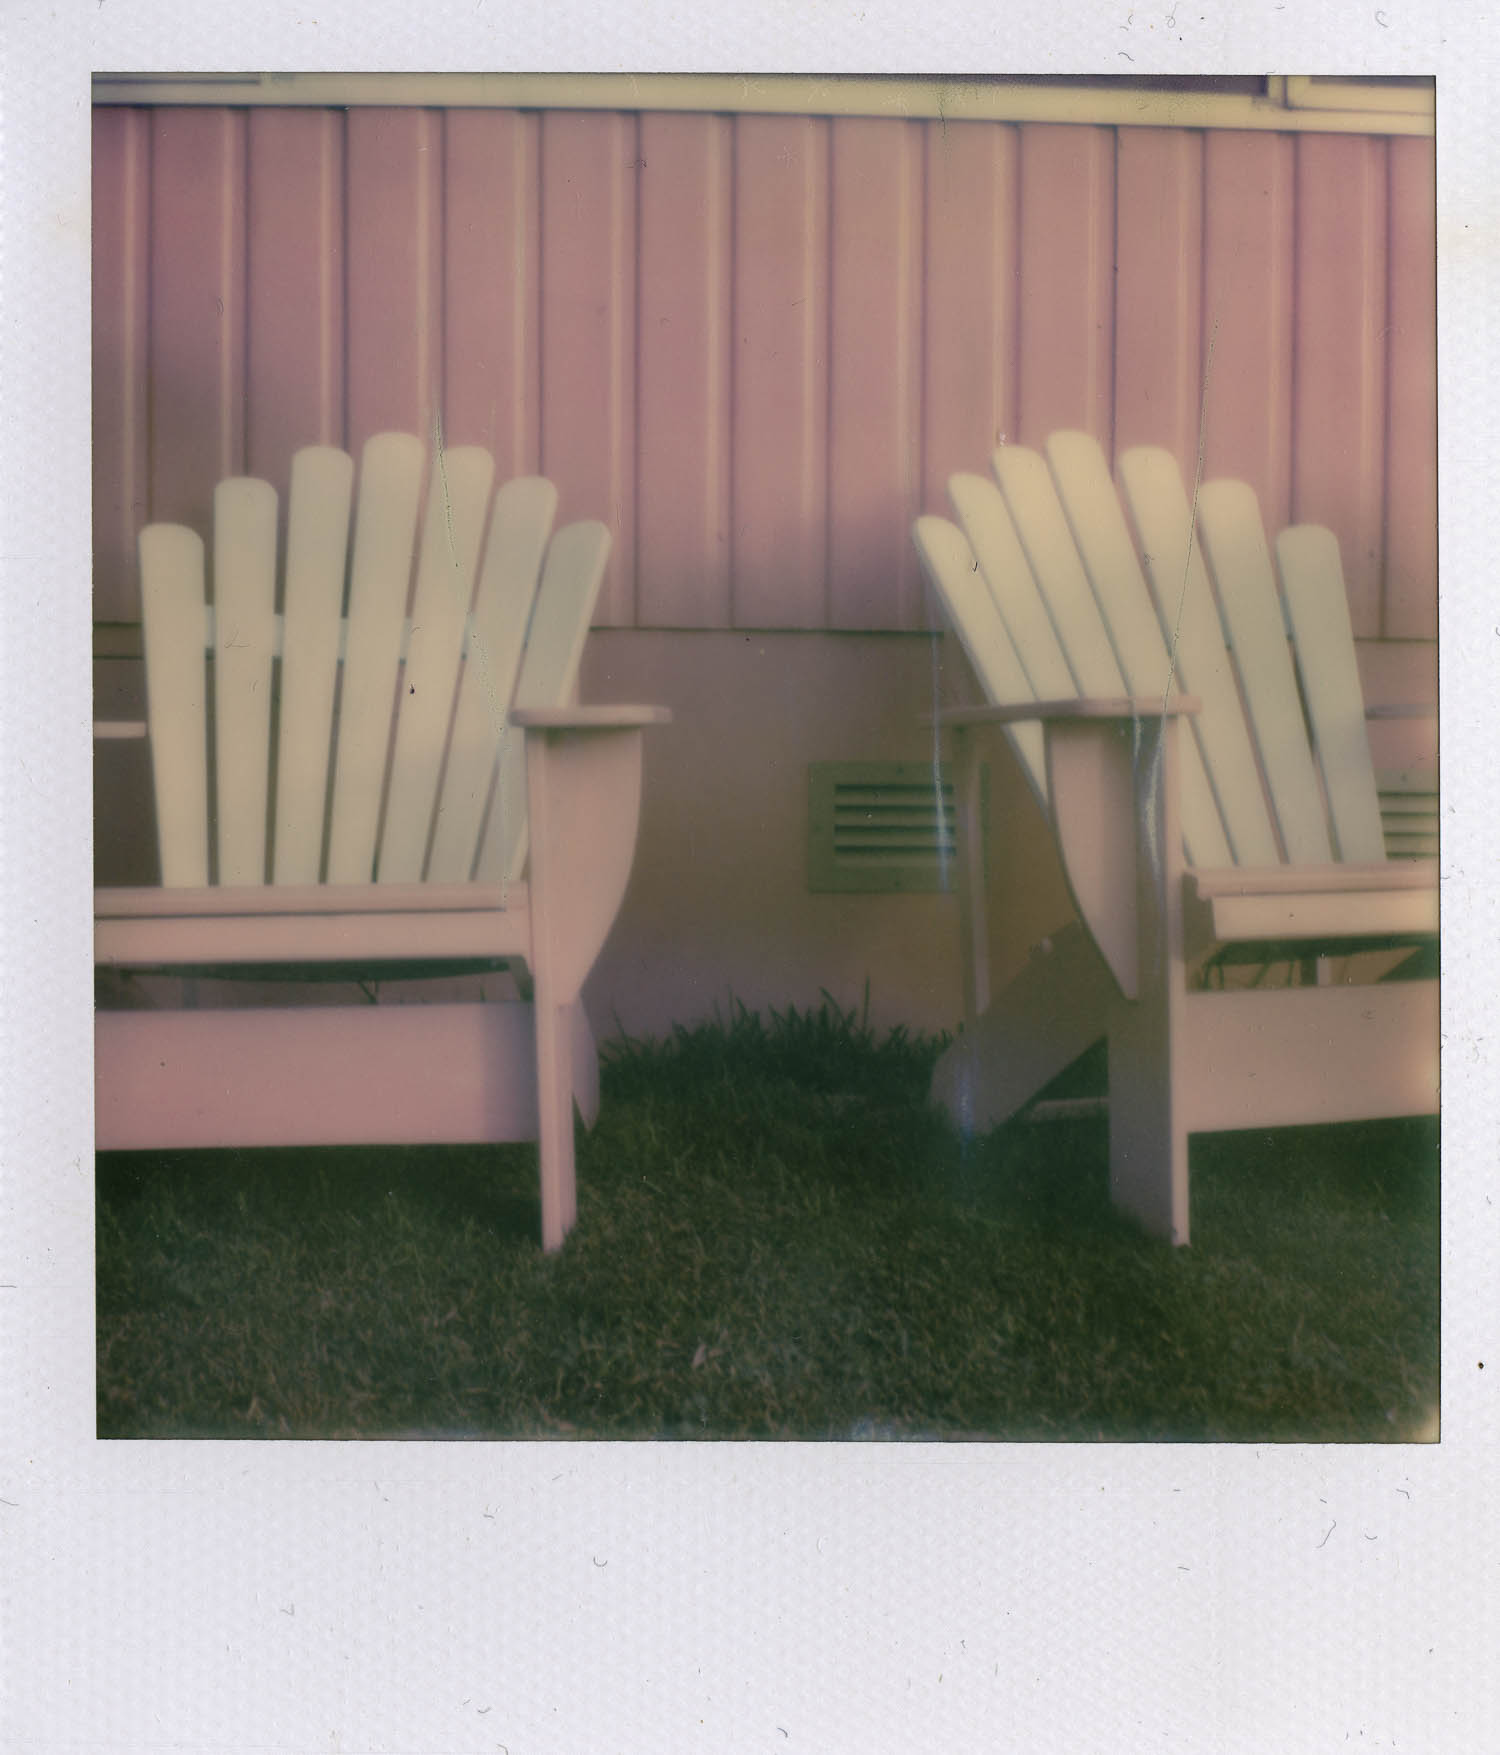 photograph of pink weatherboard on the side of a house with two pink and white adirondack-style chairs on the grass in front of the building. © leonie wise